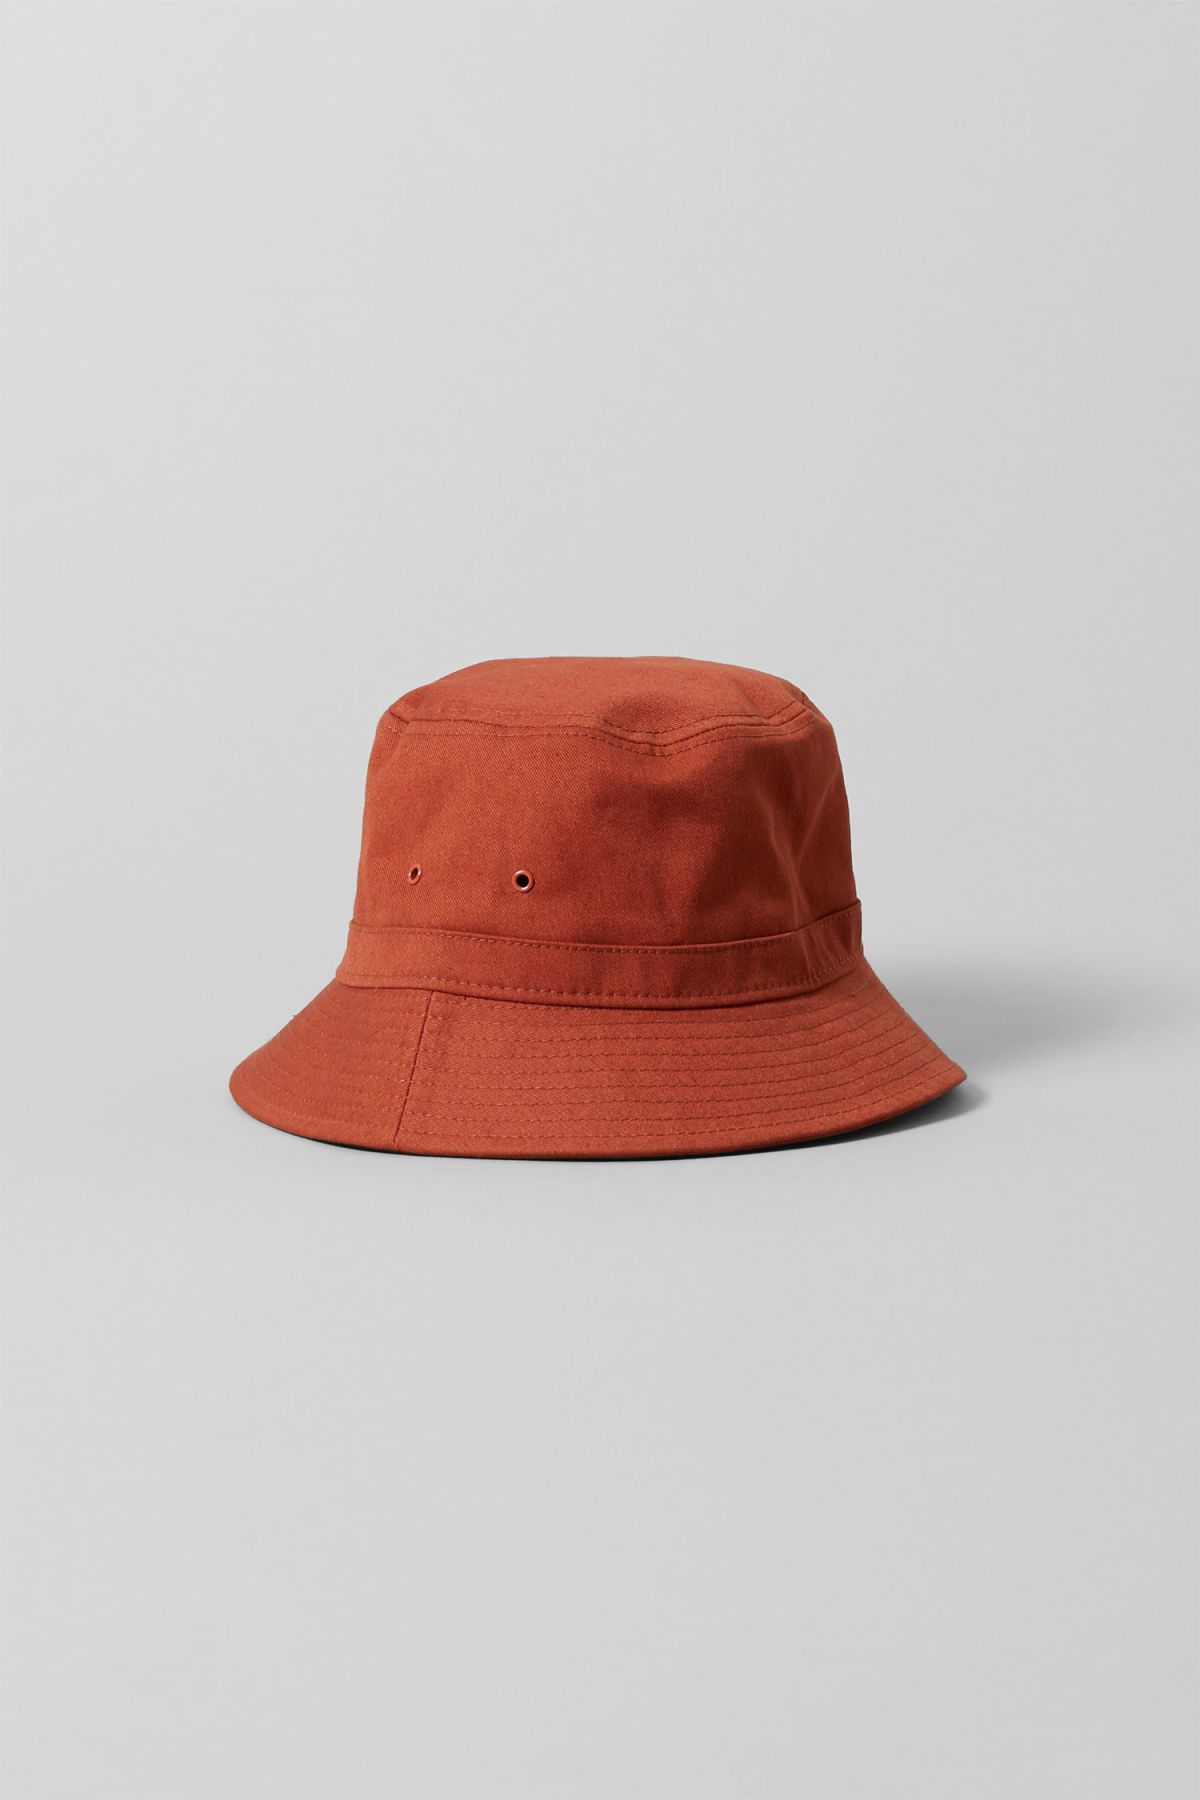 db3cc9b88f8c3 The Attitude Bucket Hat is a seasonal favourite for the sunny times. Made  of a